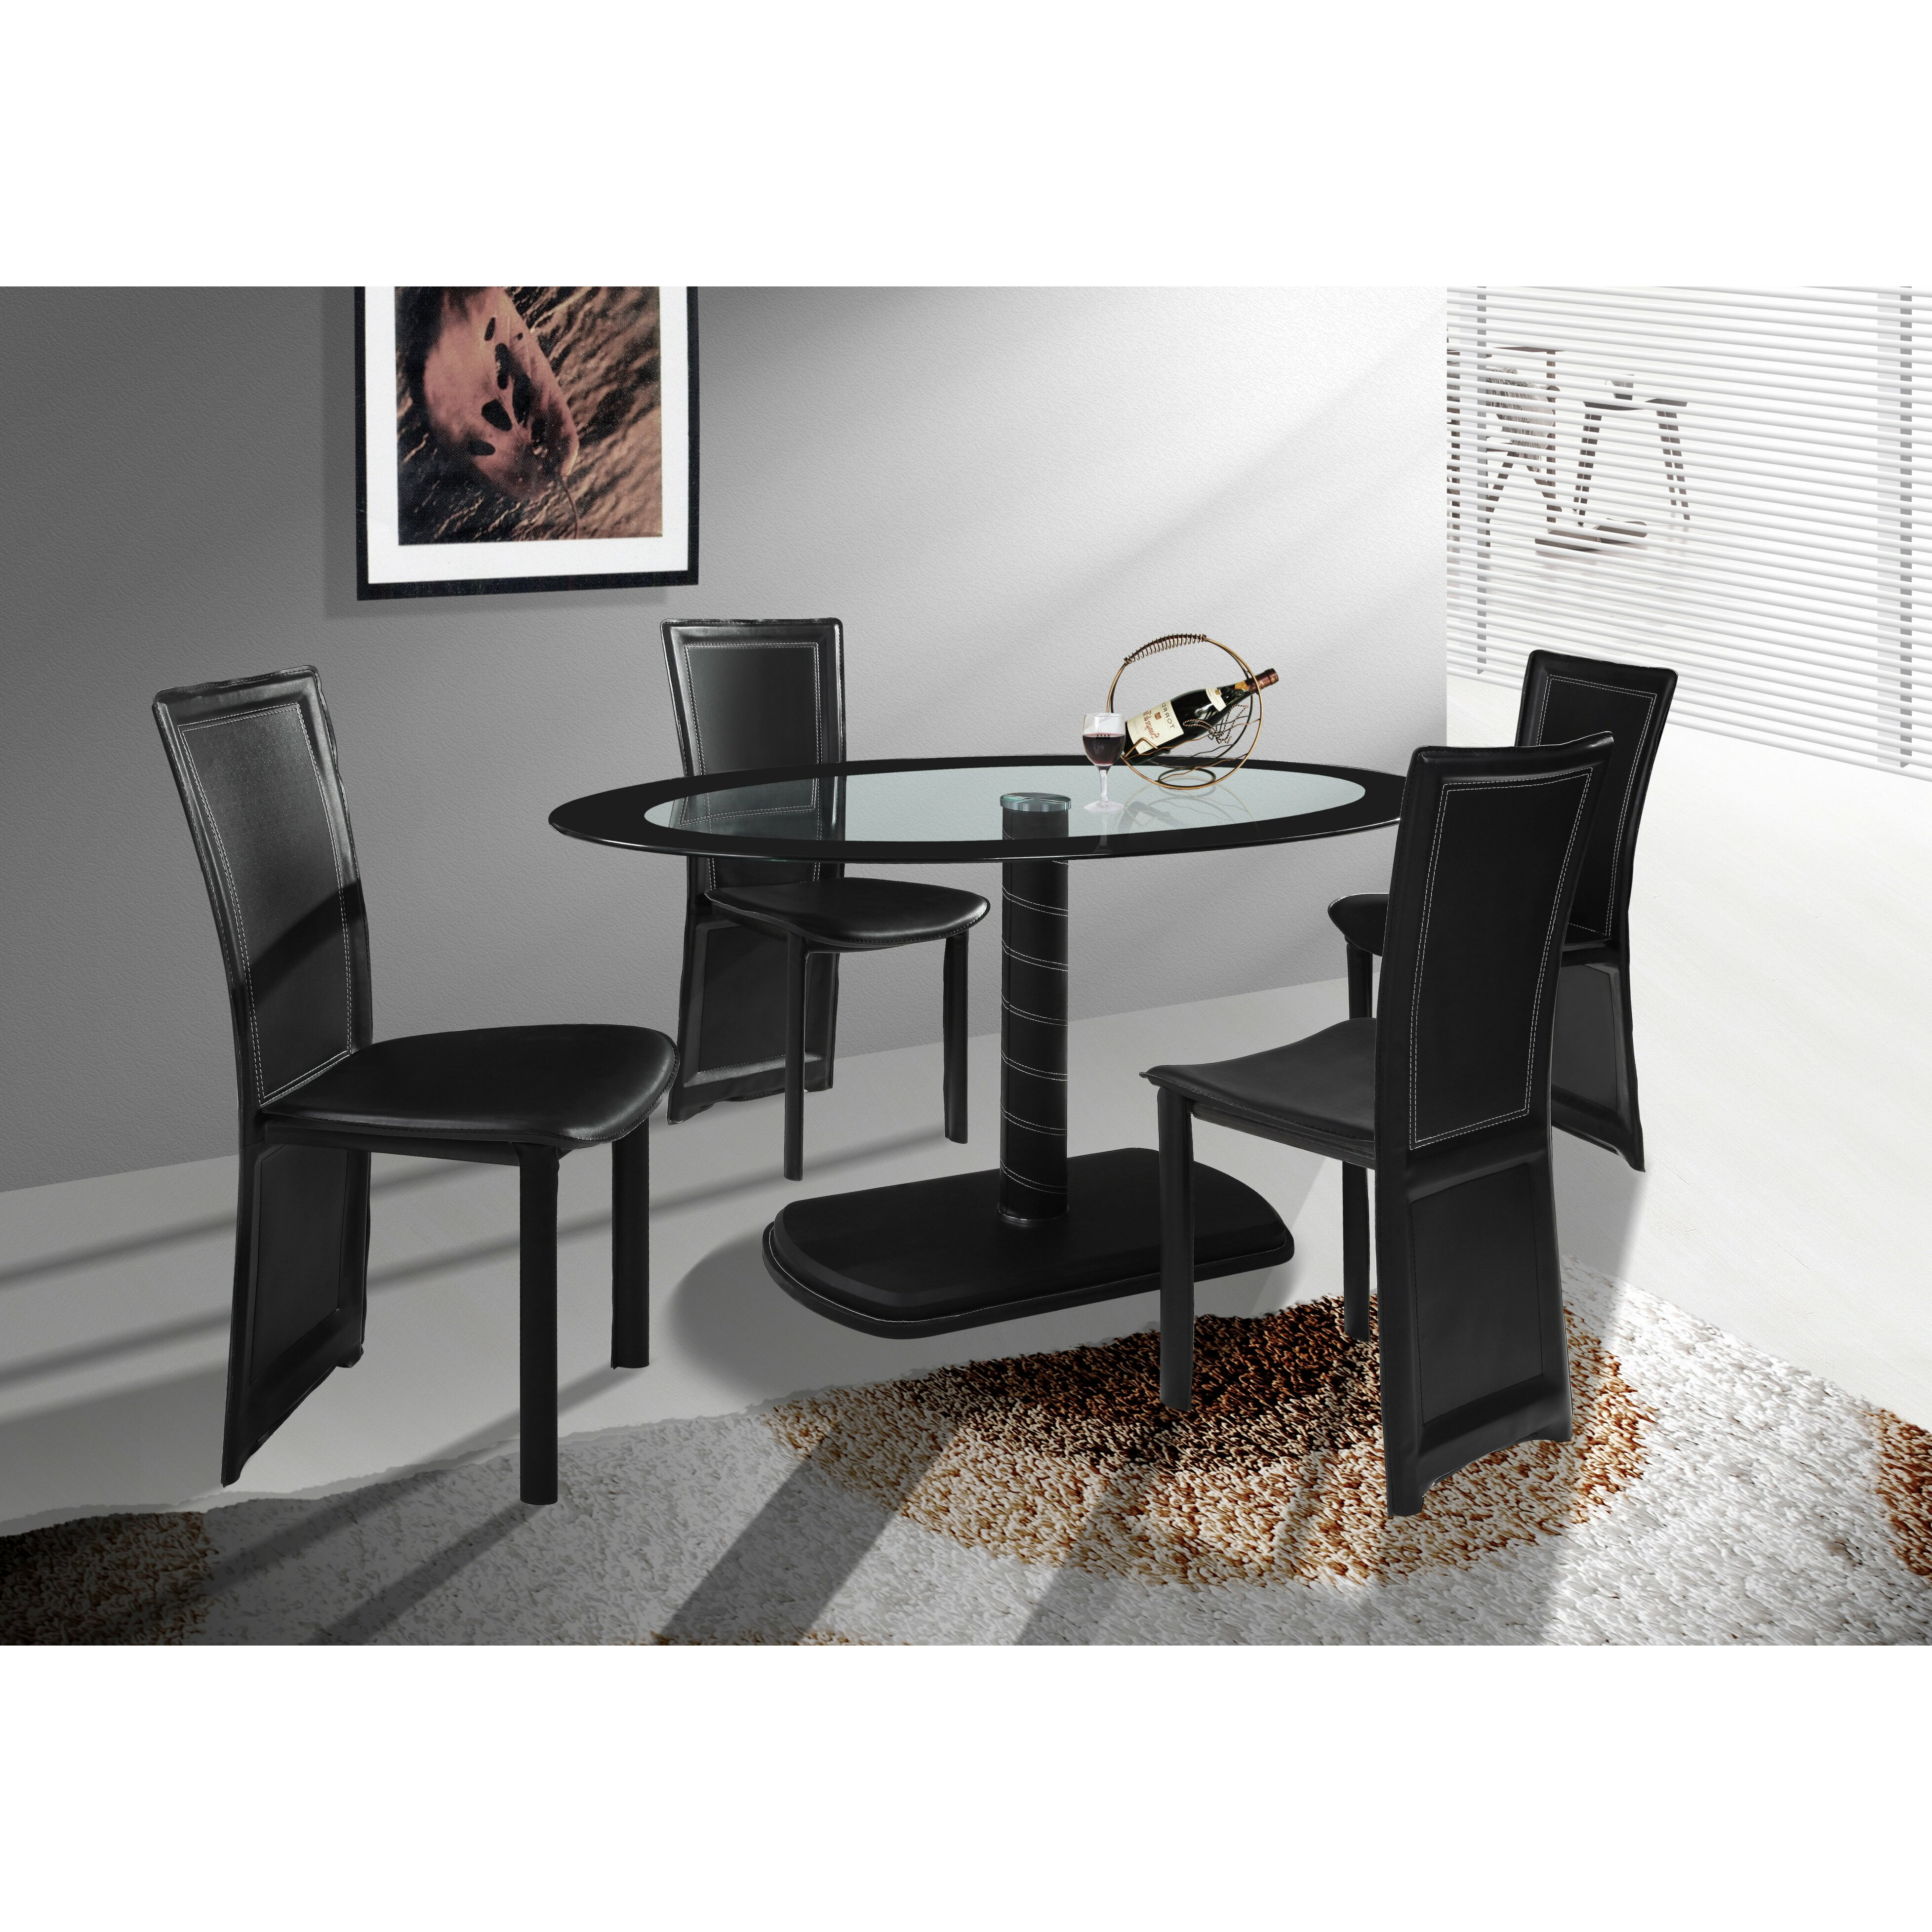 Home Haus Orson Dining Table And 4 Chairs Reviews